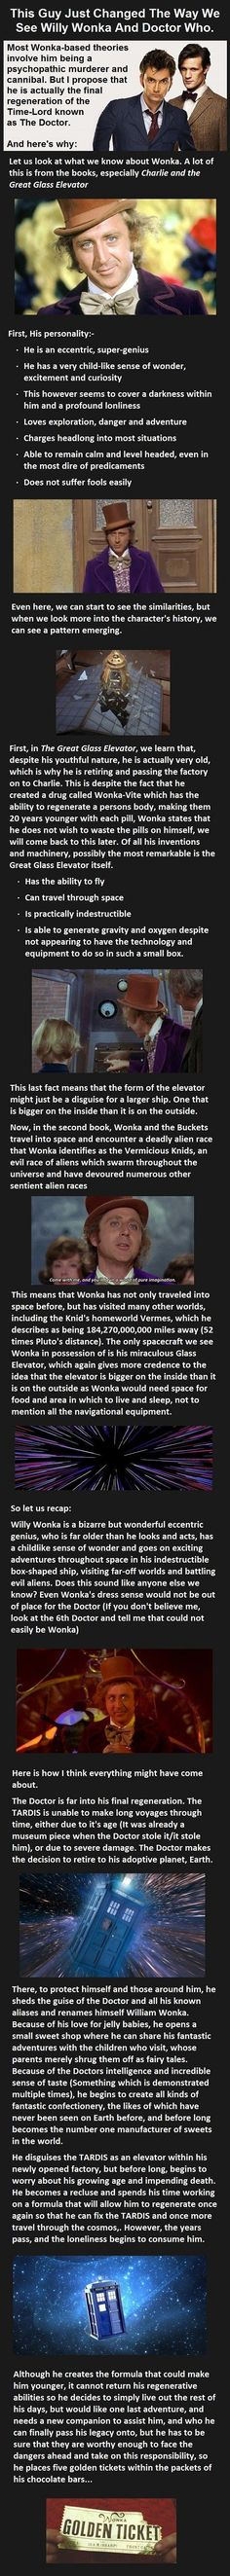 Is willy Wonka the final incarnation of The Doctor? #dw #doctorwho